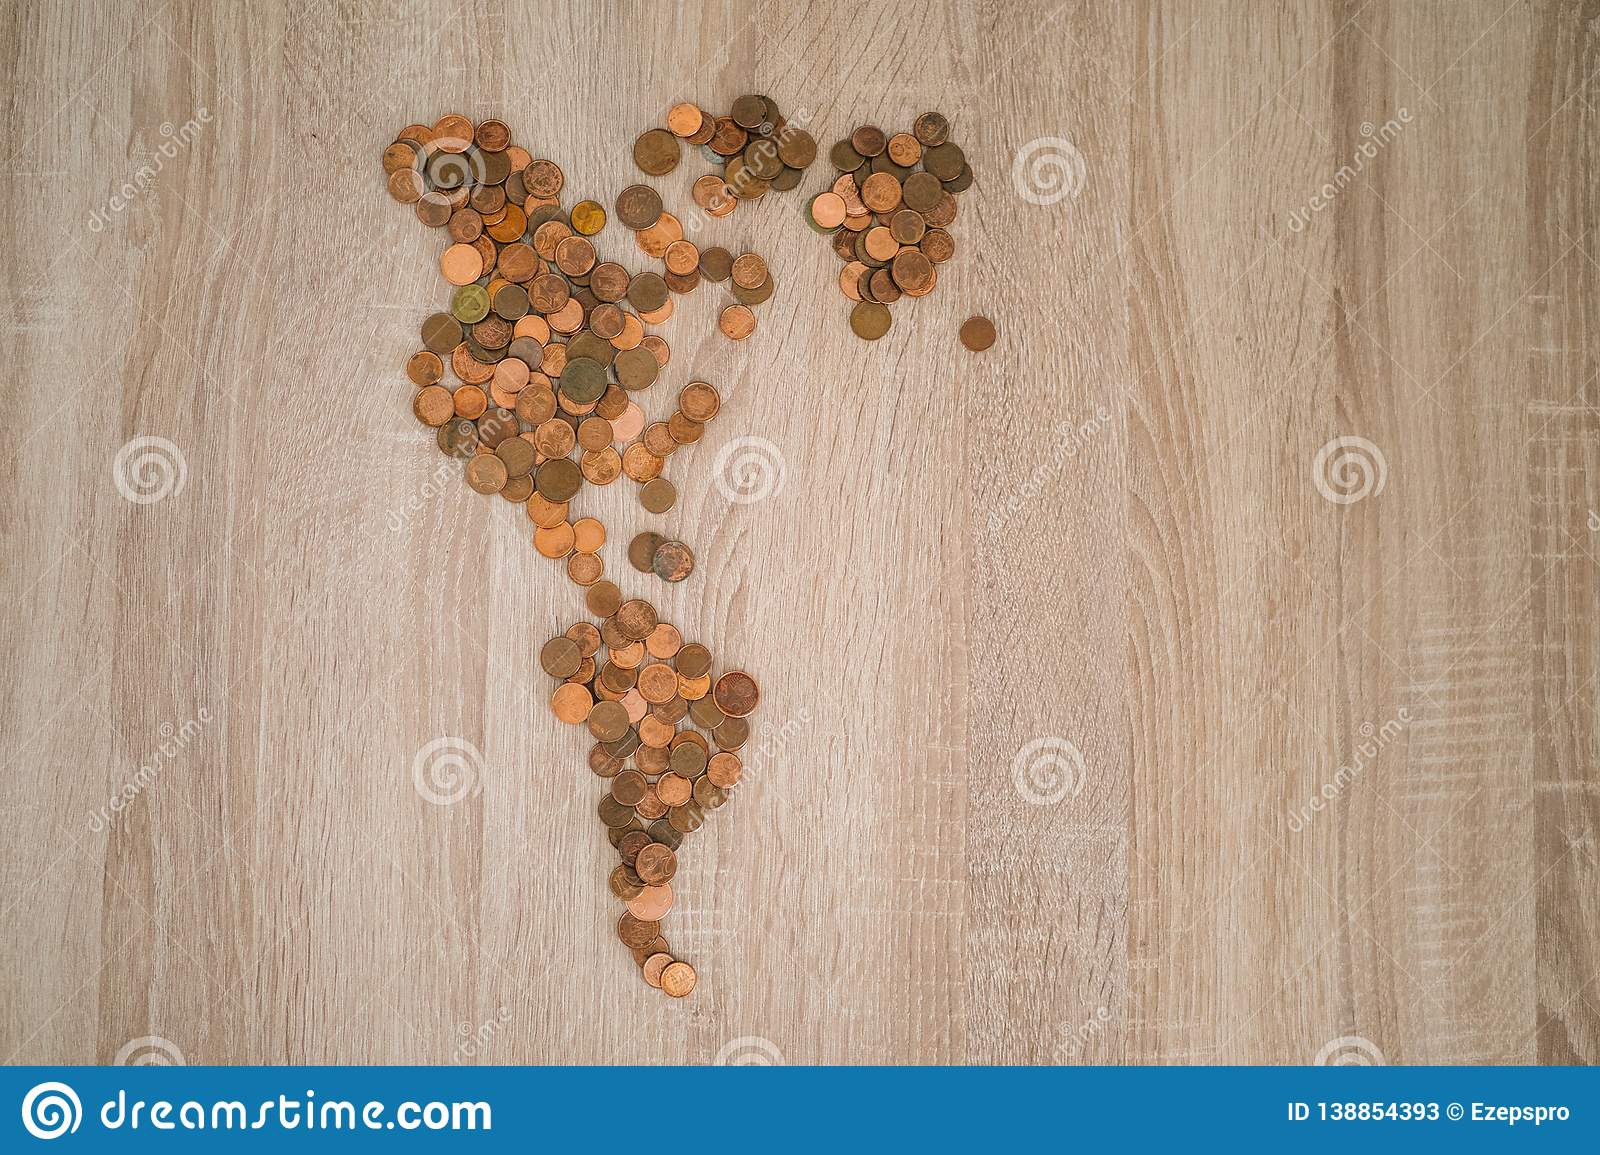 Map of the american continent made with coins